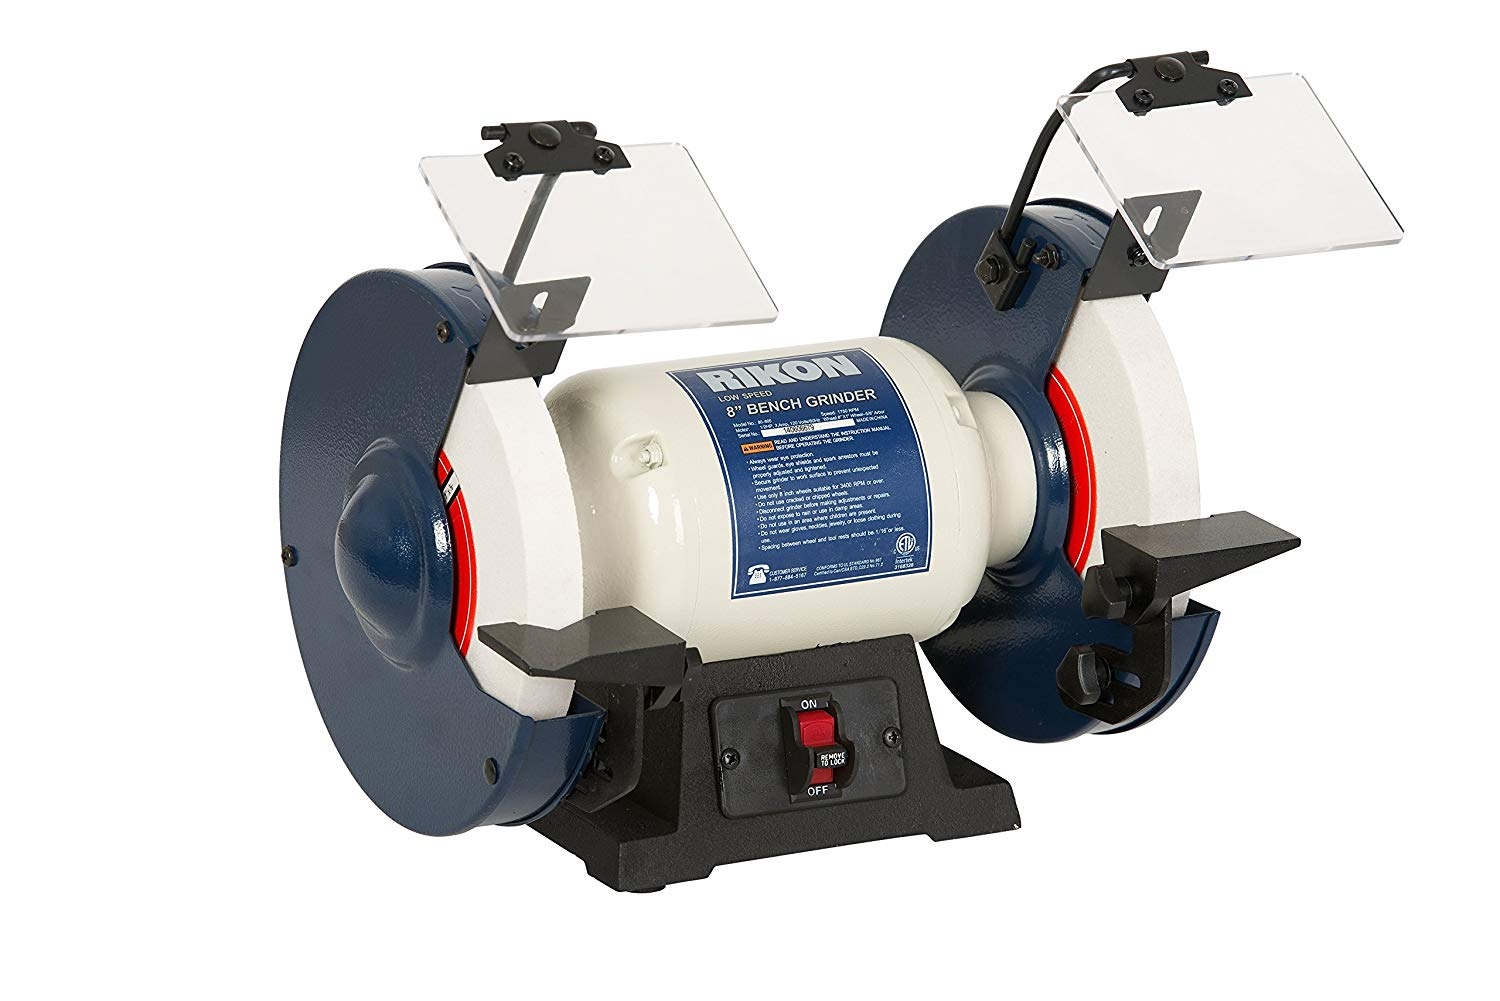 Rikon Professional Power Tools, Slow Speed Bench Grinder - Bench Grinders